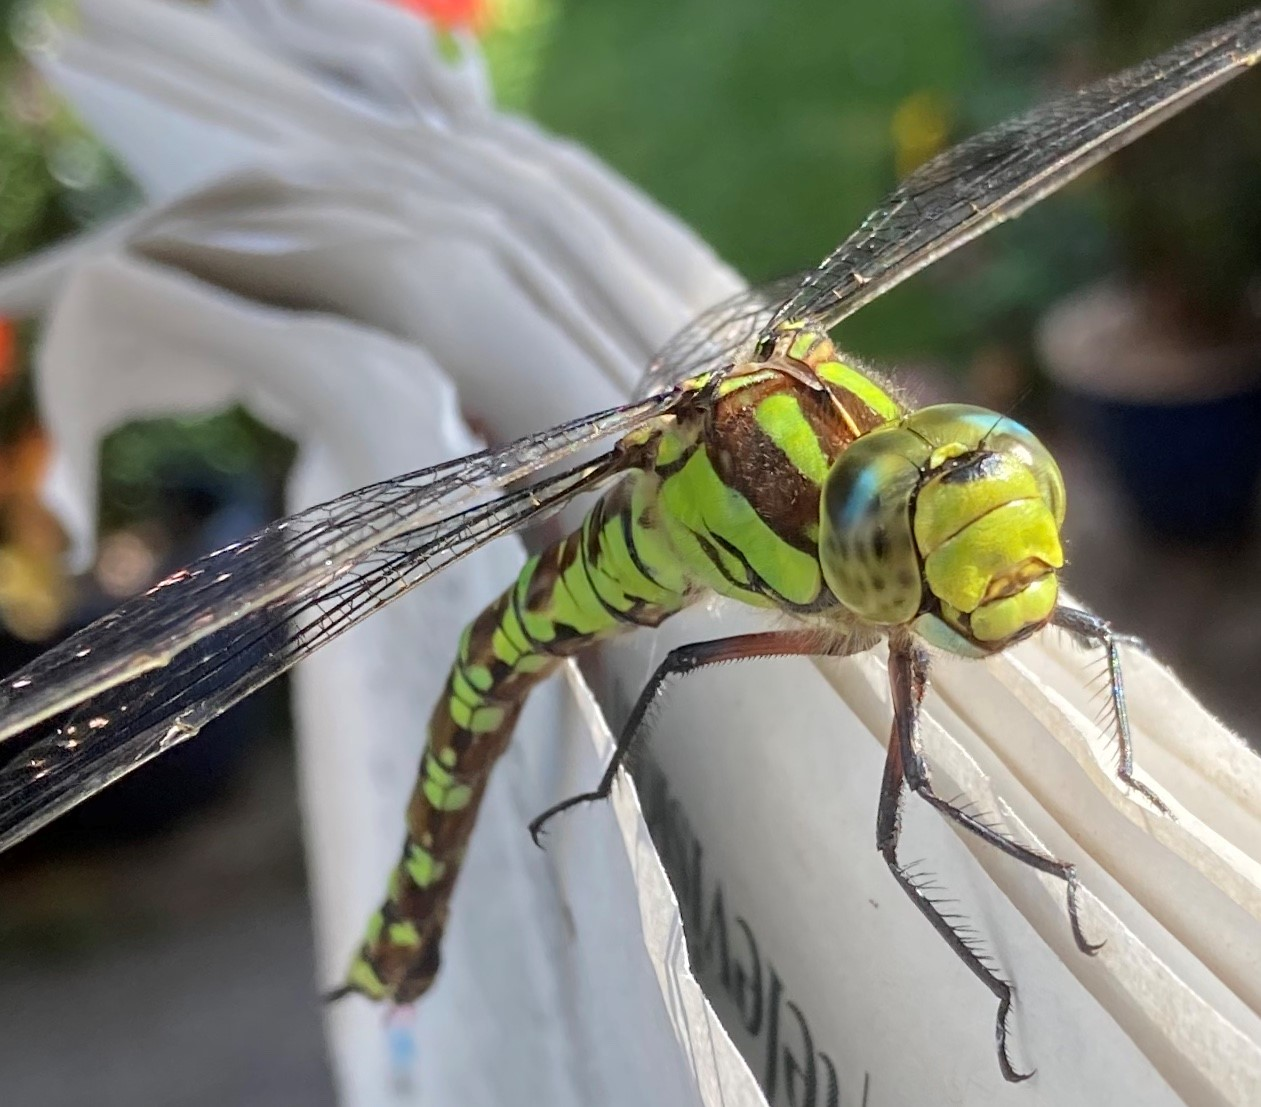 A close-up photograph of a green and brown Southern Hawker dragonfly perched on the edge of a newspaper.